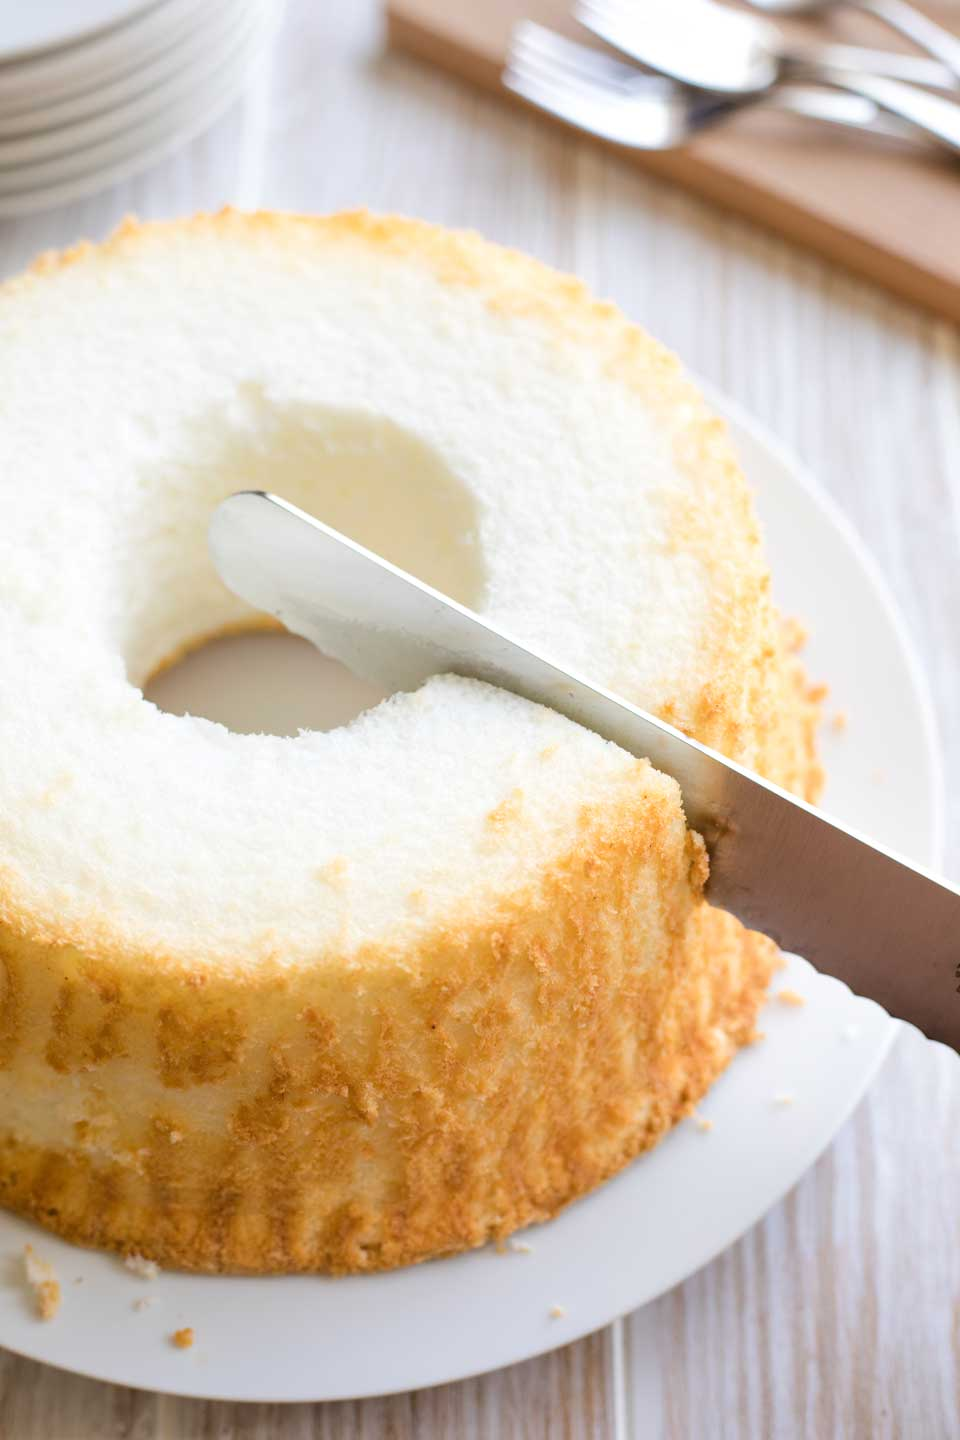 White platter holding an entire angel food cake, with a long serrated knife just starting to make the first cut into it.